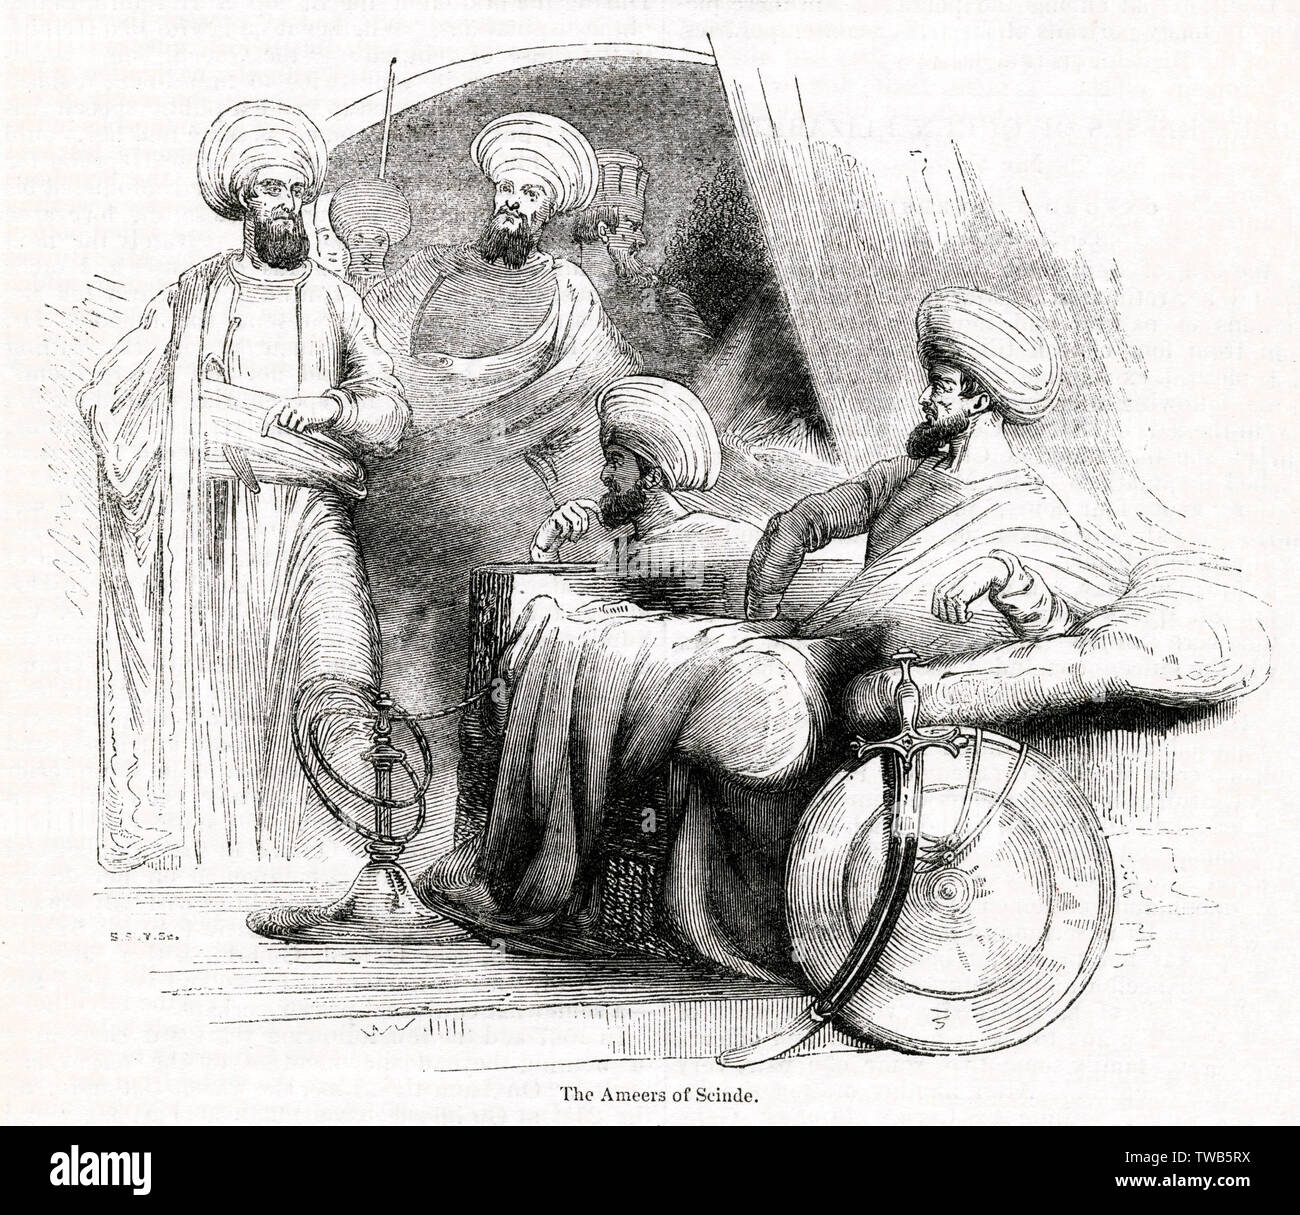 Amirs (commanders) of Scinde, an Indian ethnic group from Sindh (now a province of Pakistan).      Date: 1843 - Stock Image